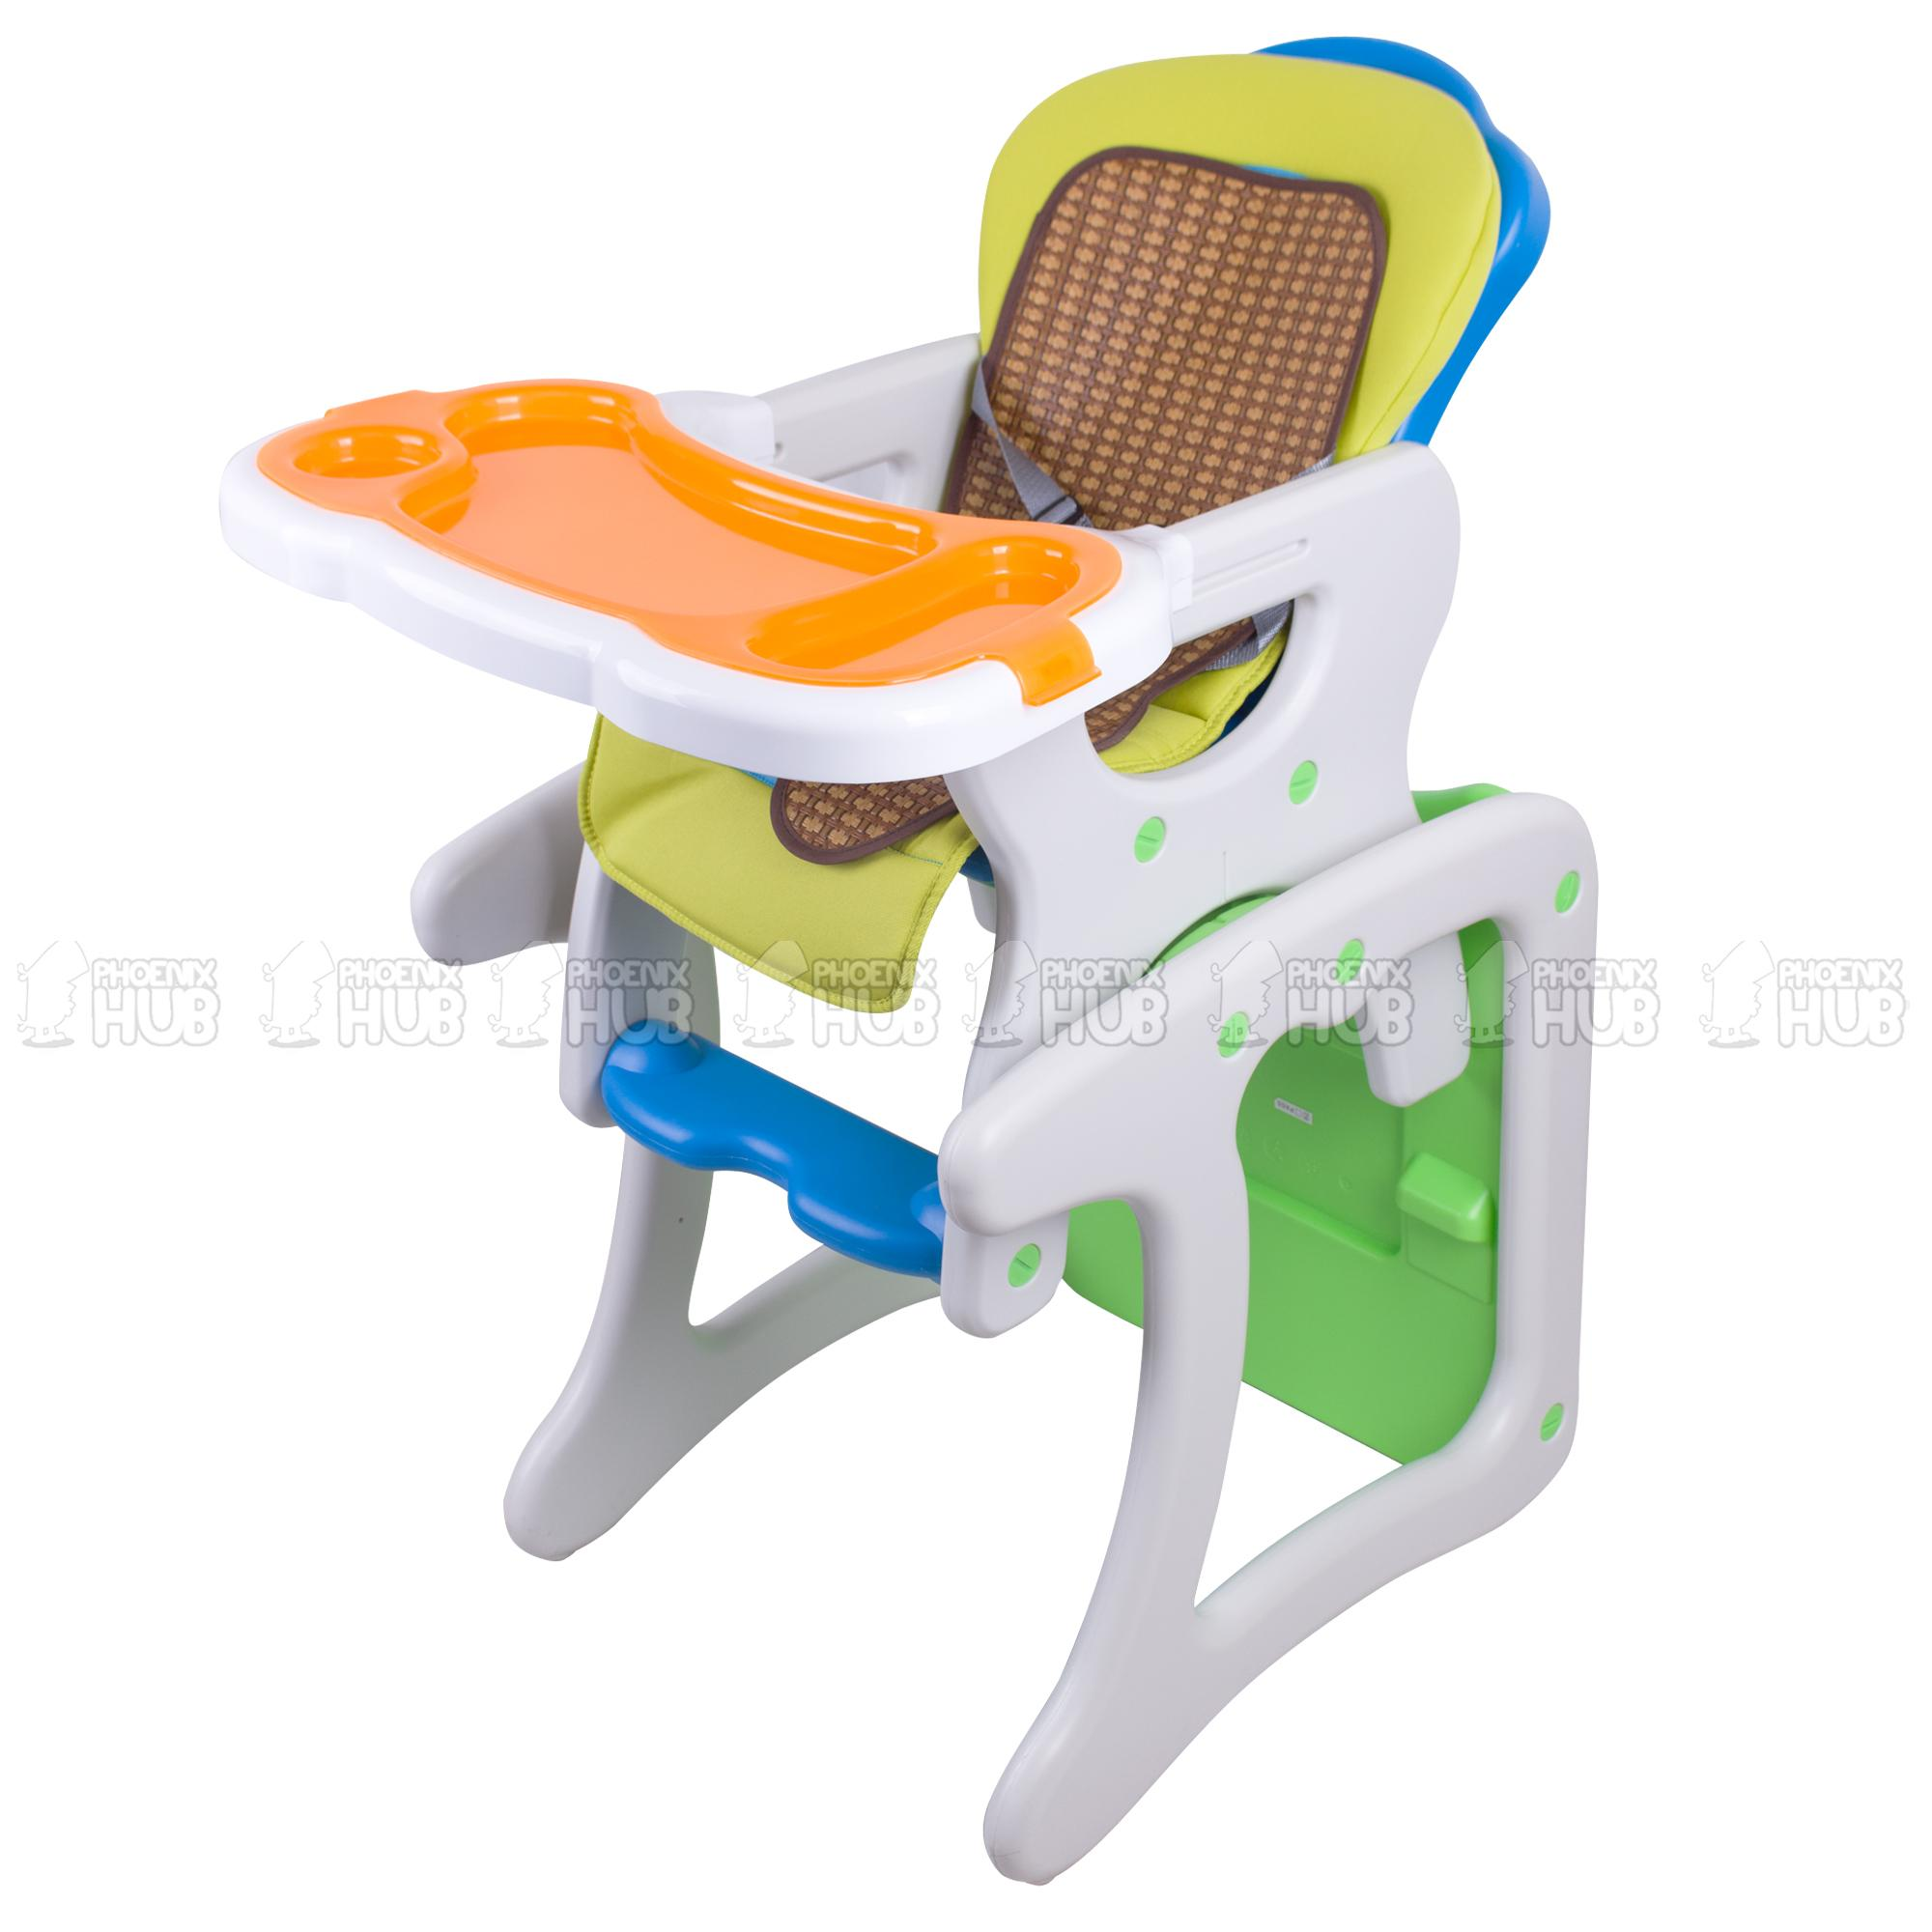 Picture of: Phoenix Hub Hc31 4 In 1 Baby High Chair Study Table Feeding Chair Premium Multi Functional Adjustable Recliner Tray Lazada Ph